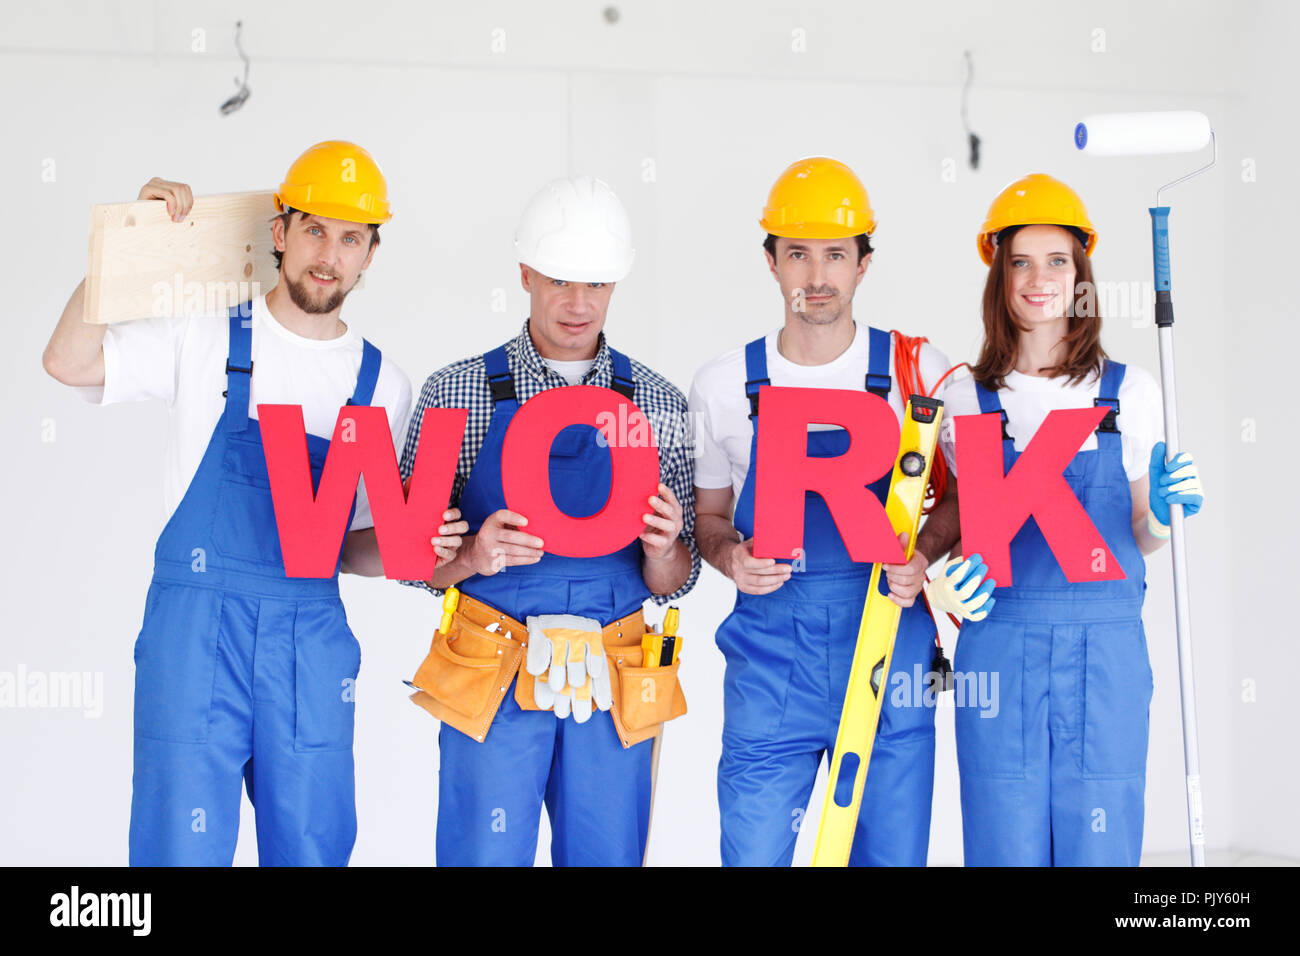 Group of workmen with word WORK and tools indoors - Stock Image